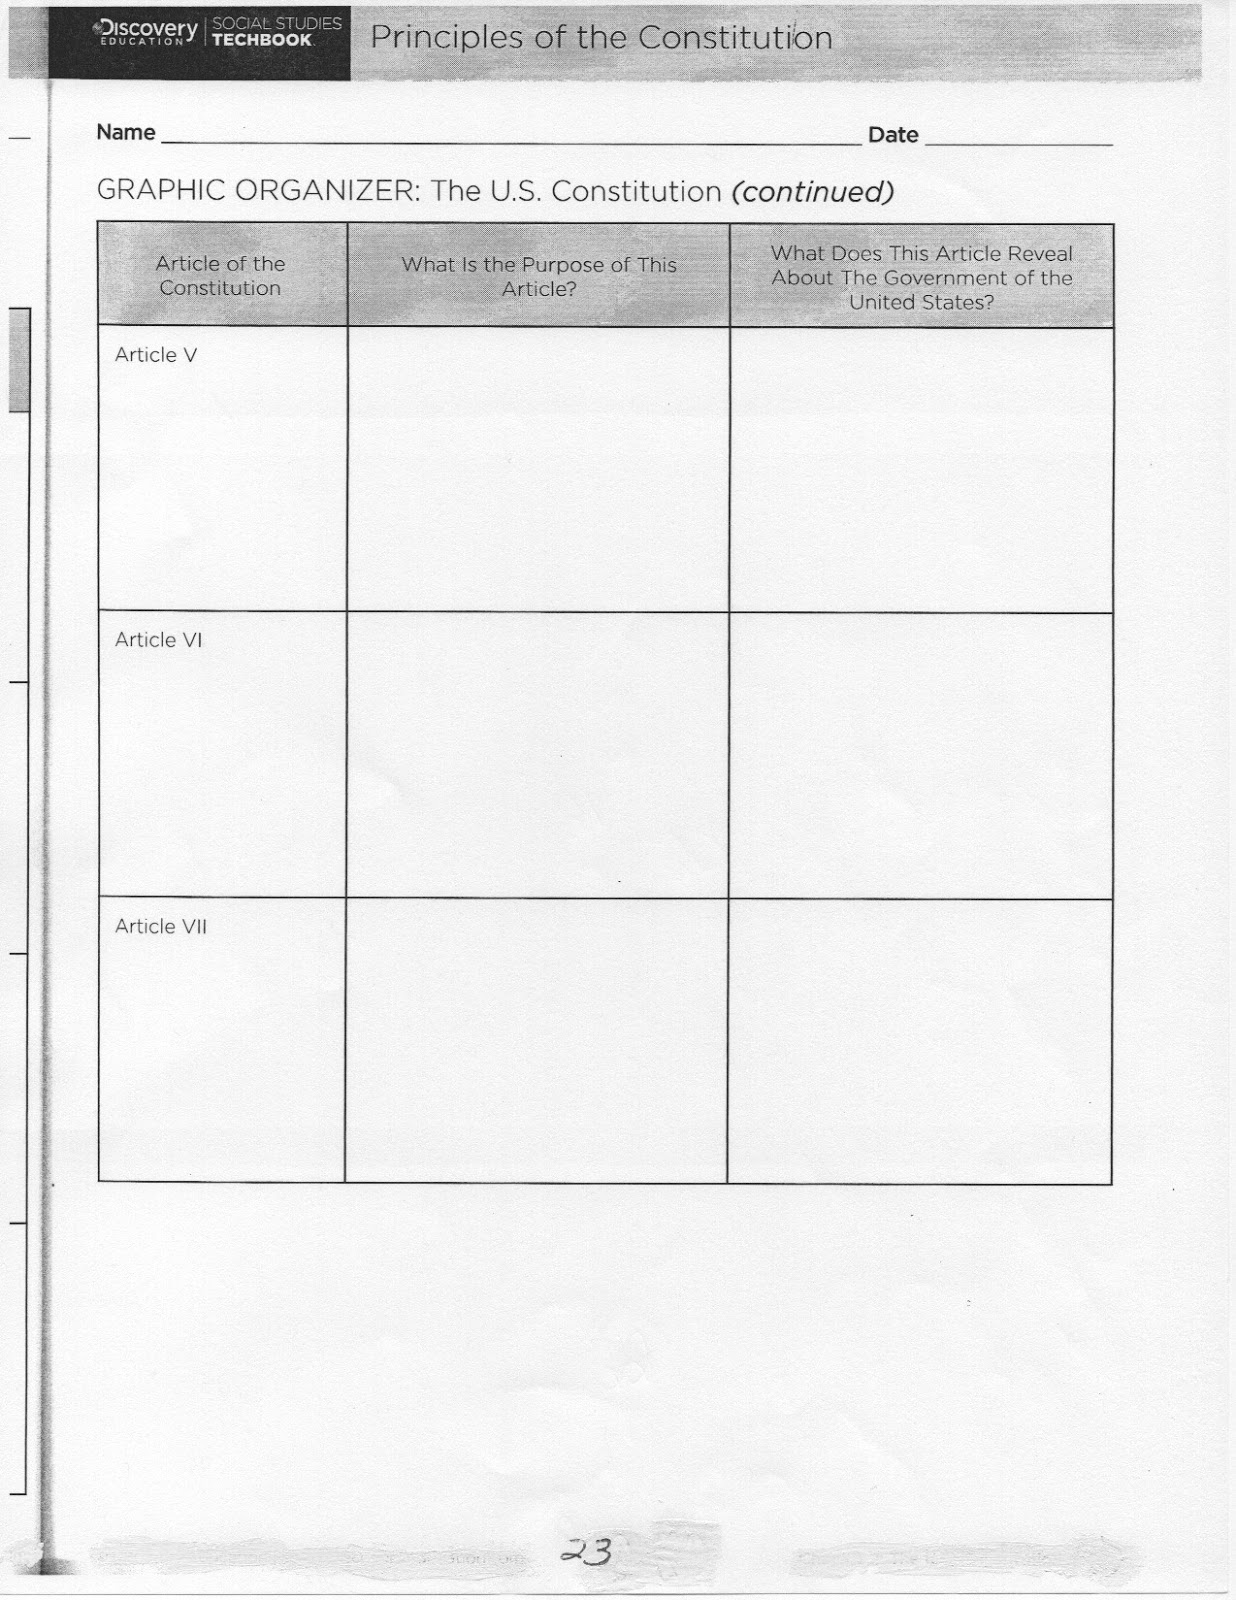 Coach Green S Class Unit 4 Worksheets Principles Of The